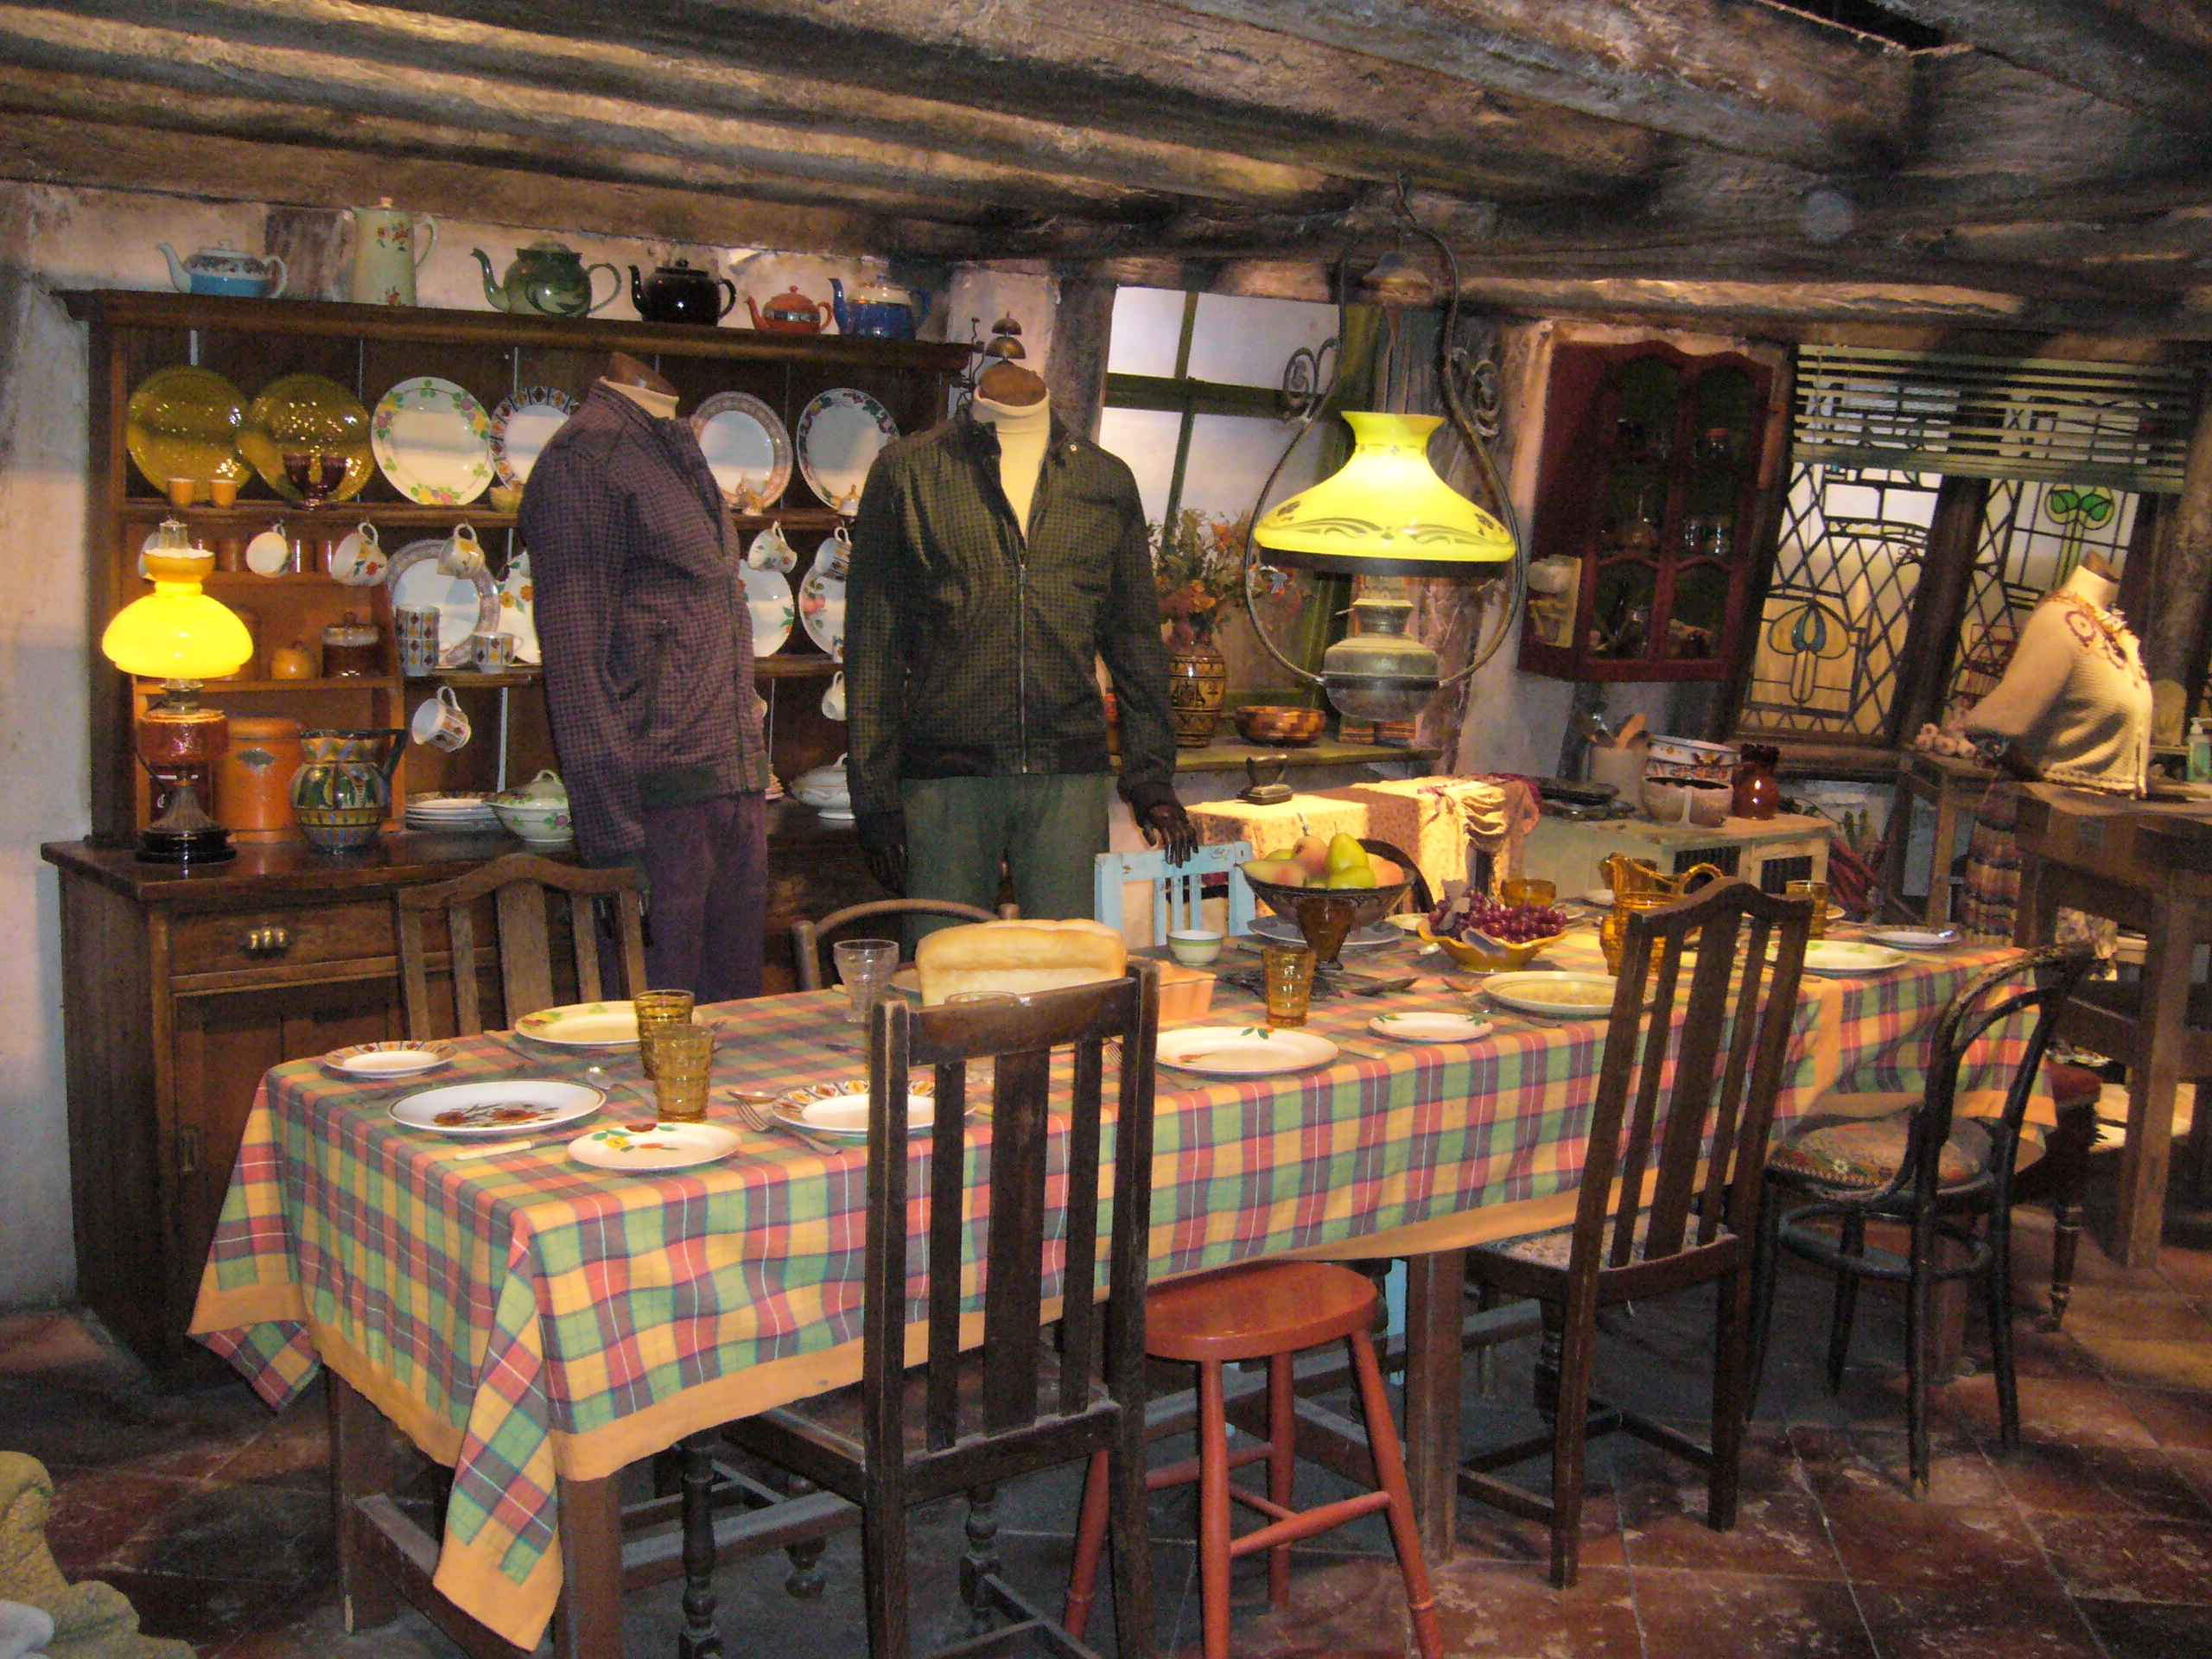 Harry Potter And The Tudios Of Ecrets A Day Out At